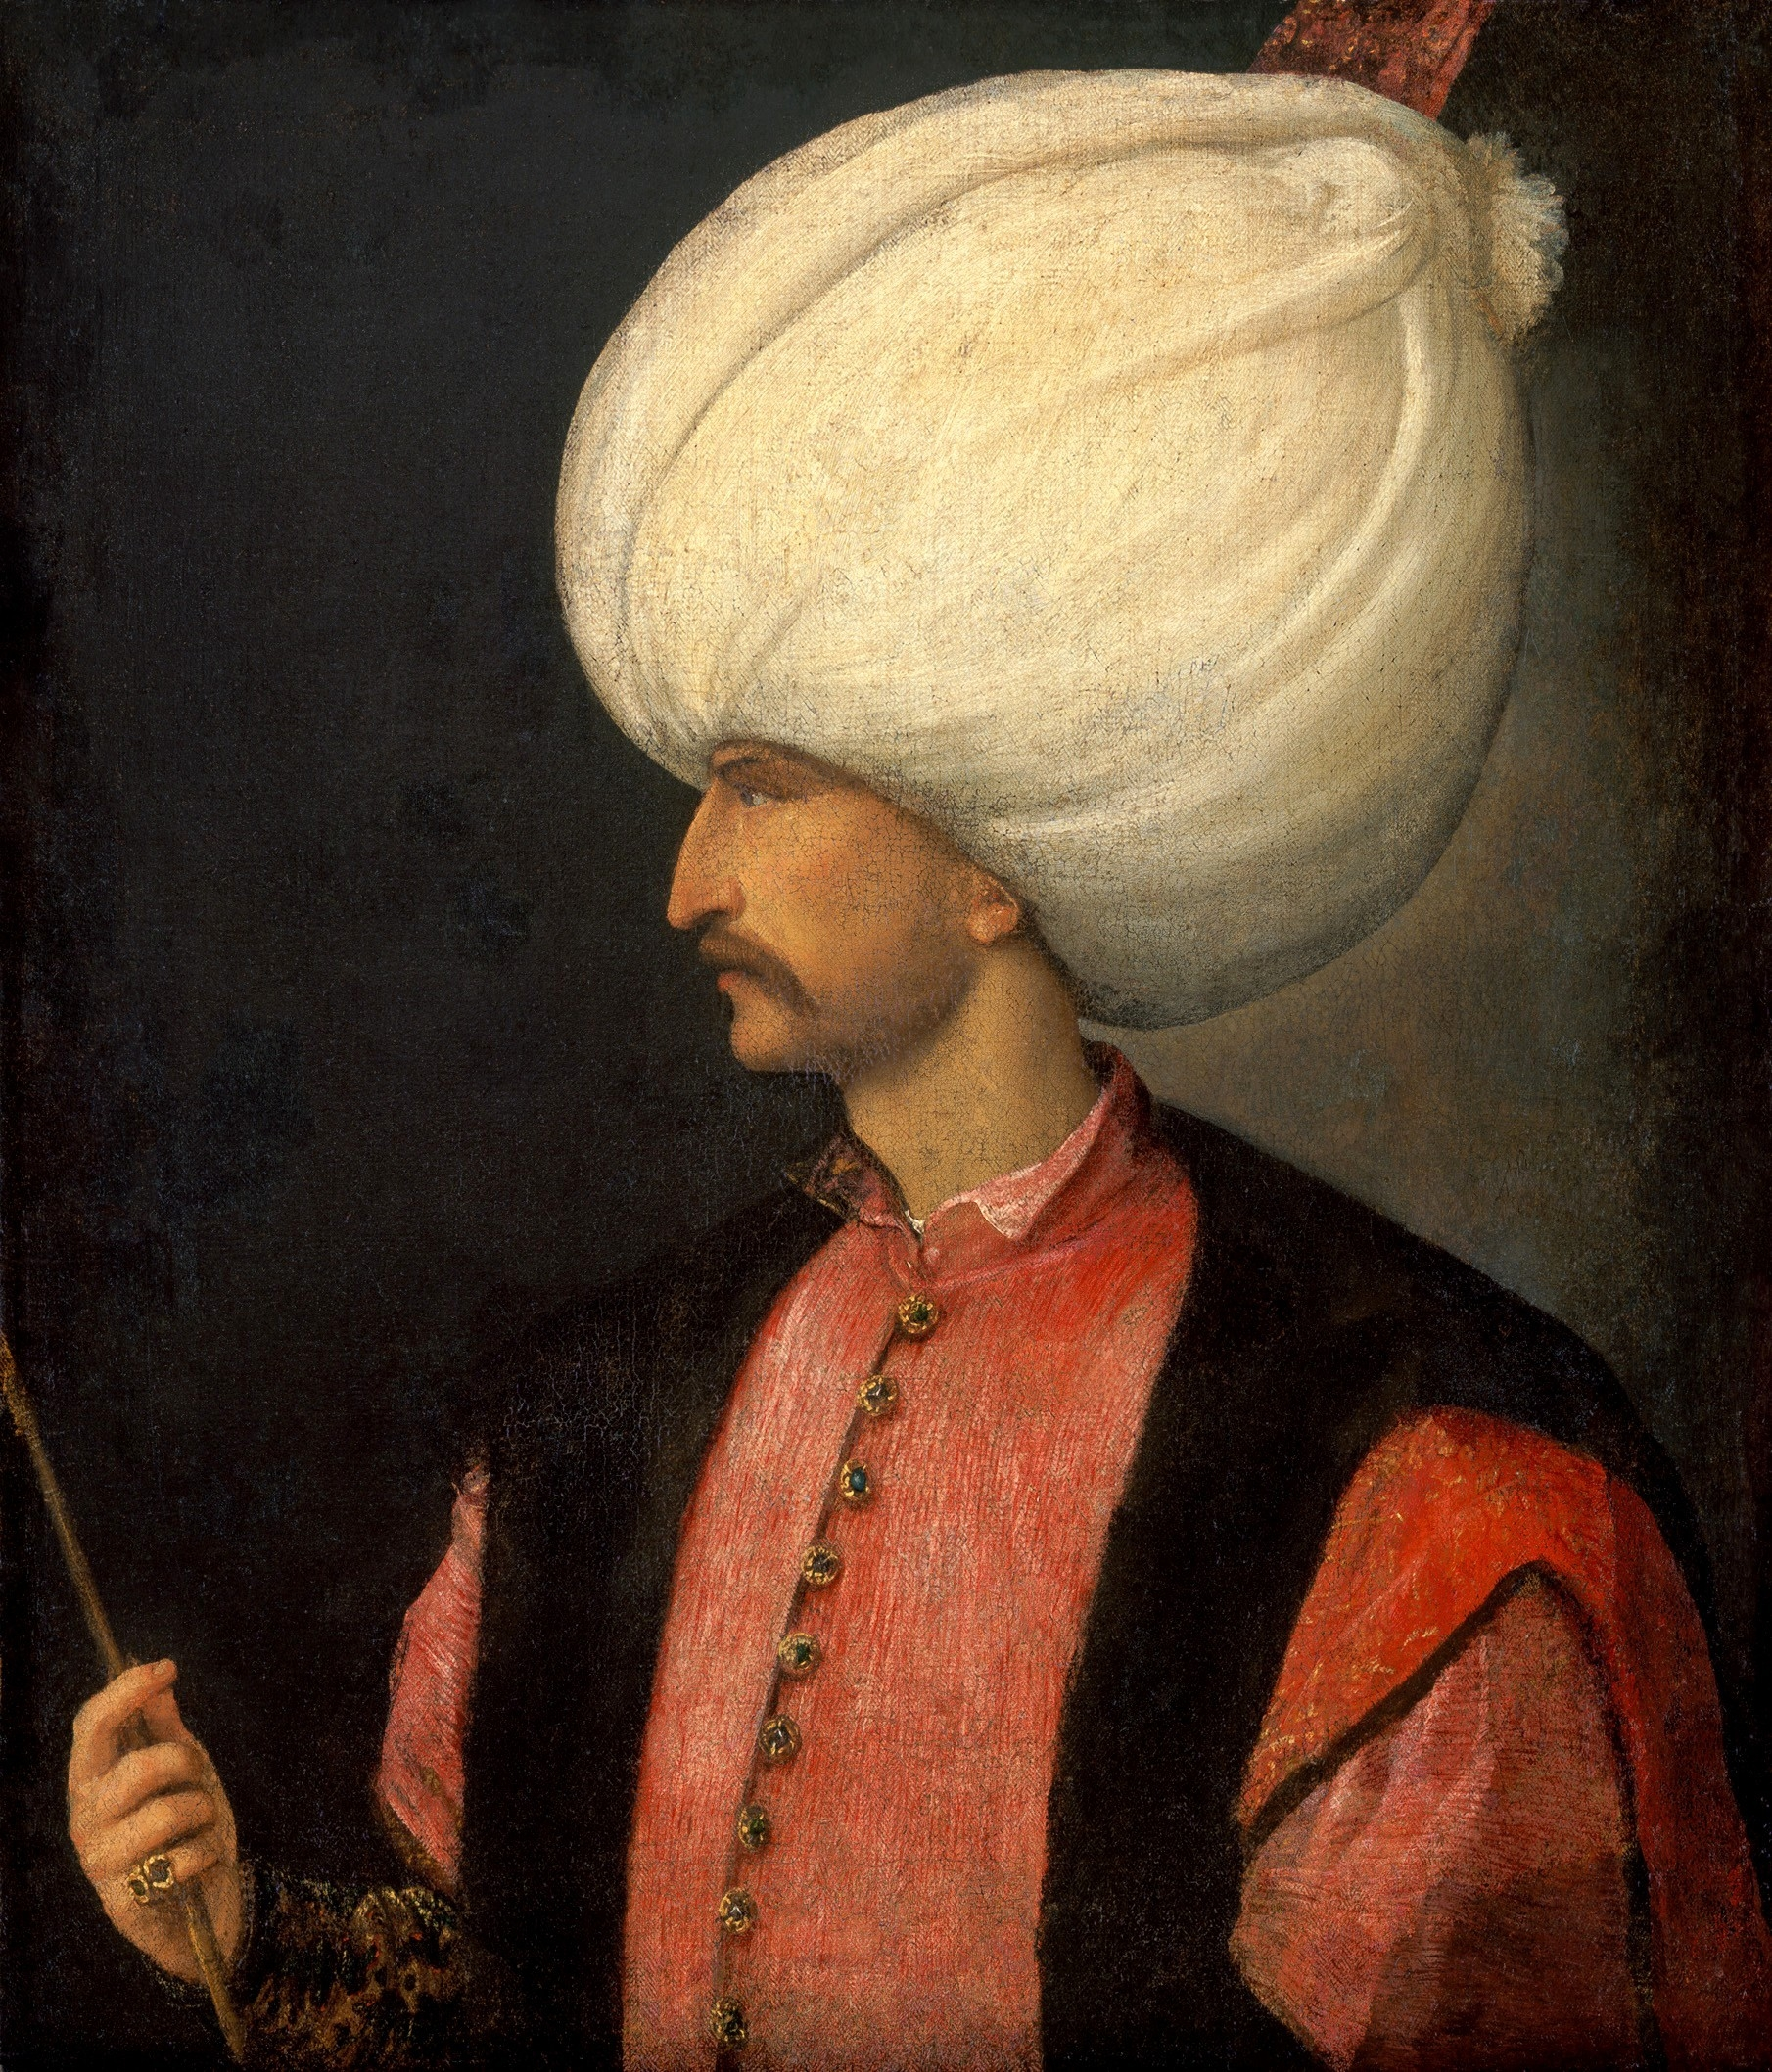 Suleiman the Magnificent - Wikipedia